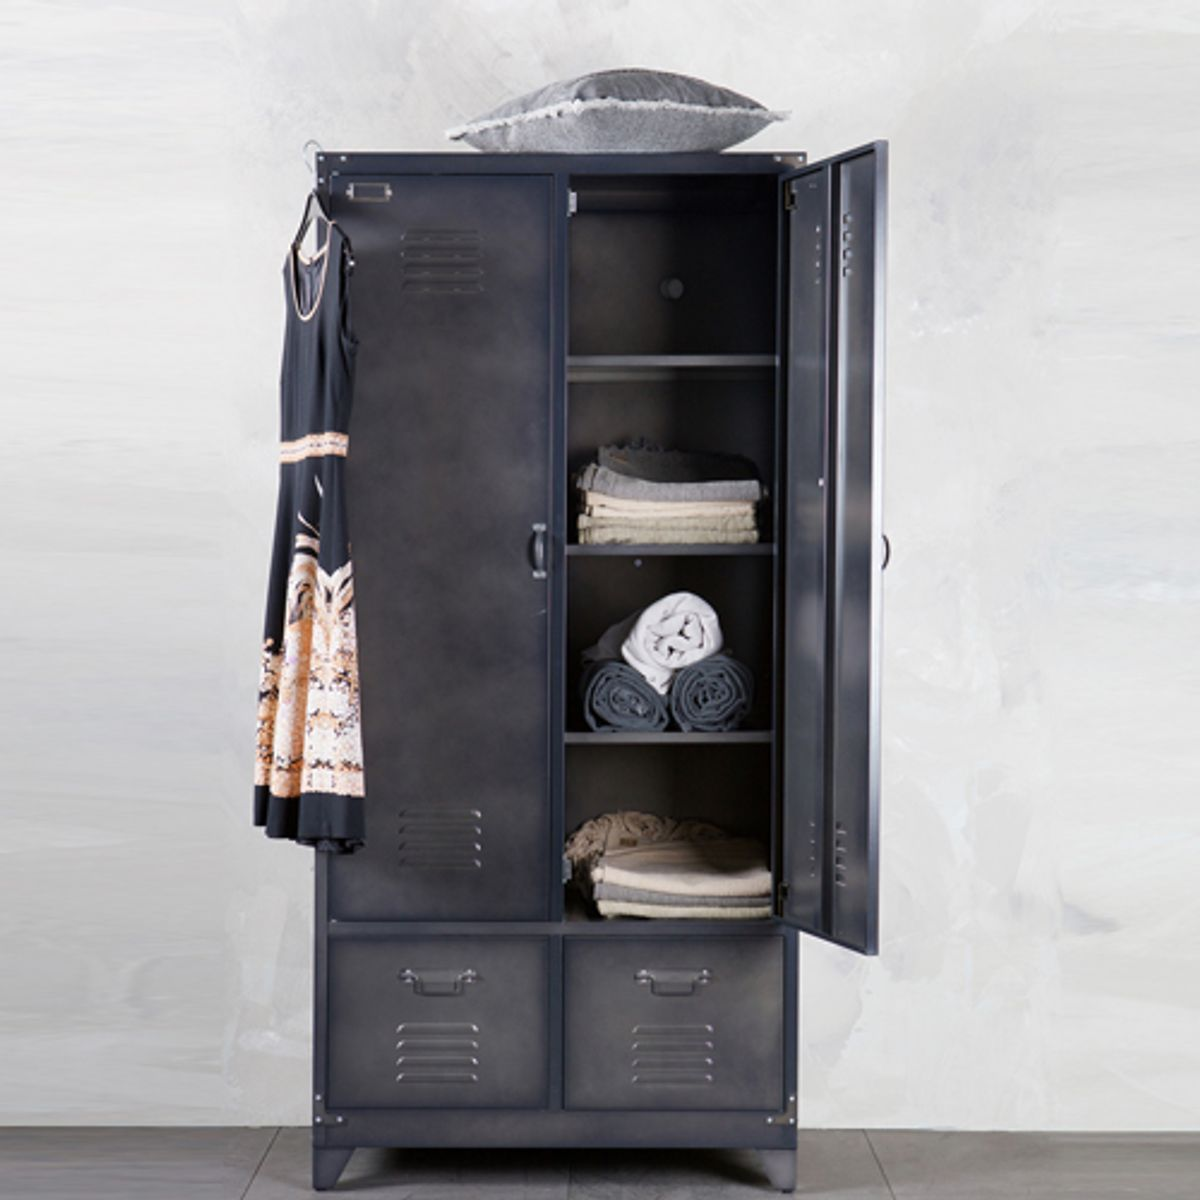 armoire casier m tal noir 1 penderie 3 tag res 2 tiroirs locker decoclico. Black Bedroom Furniture Sets. Home Design Ideas